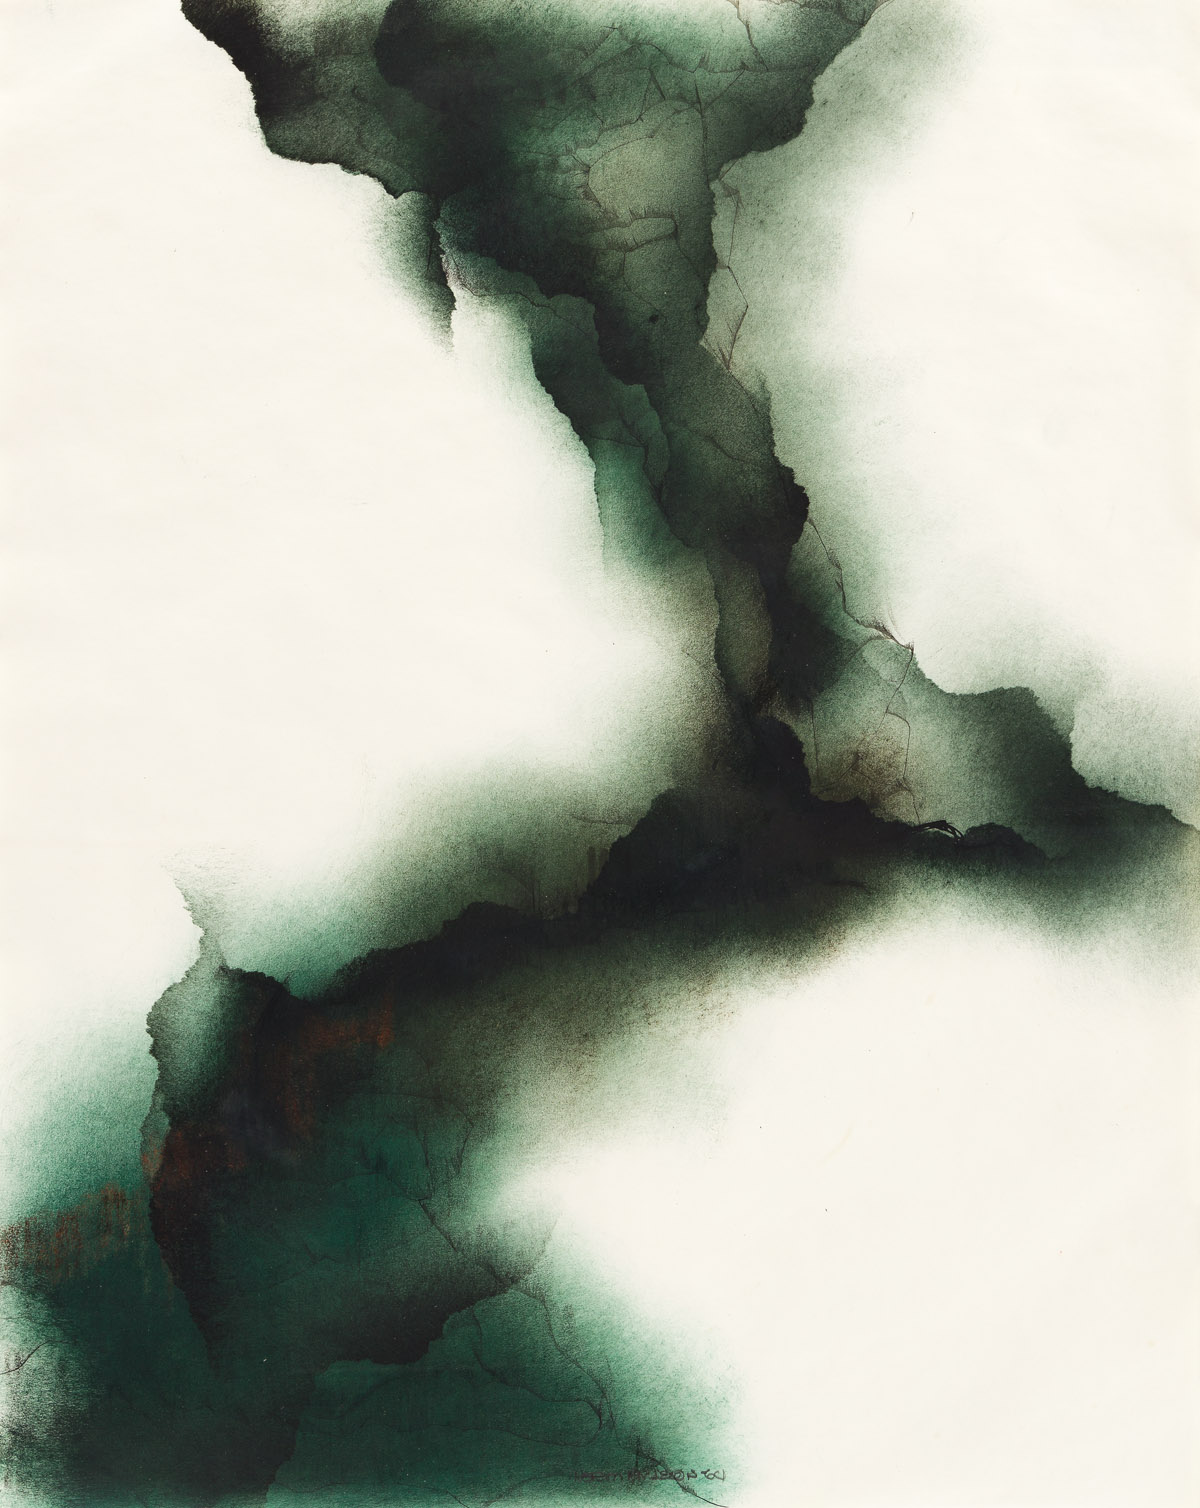 NORMAN LEWIS (1909 - 1979) Untitled (Abstraction.).